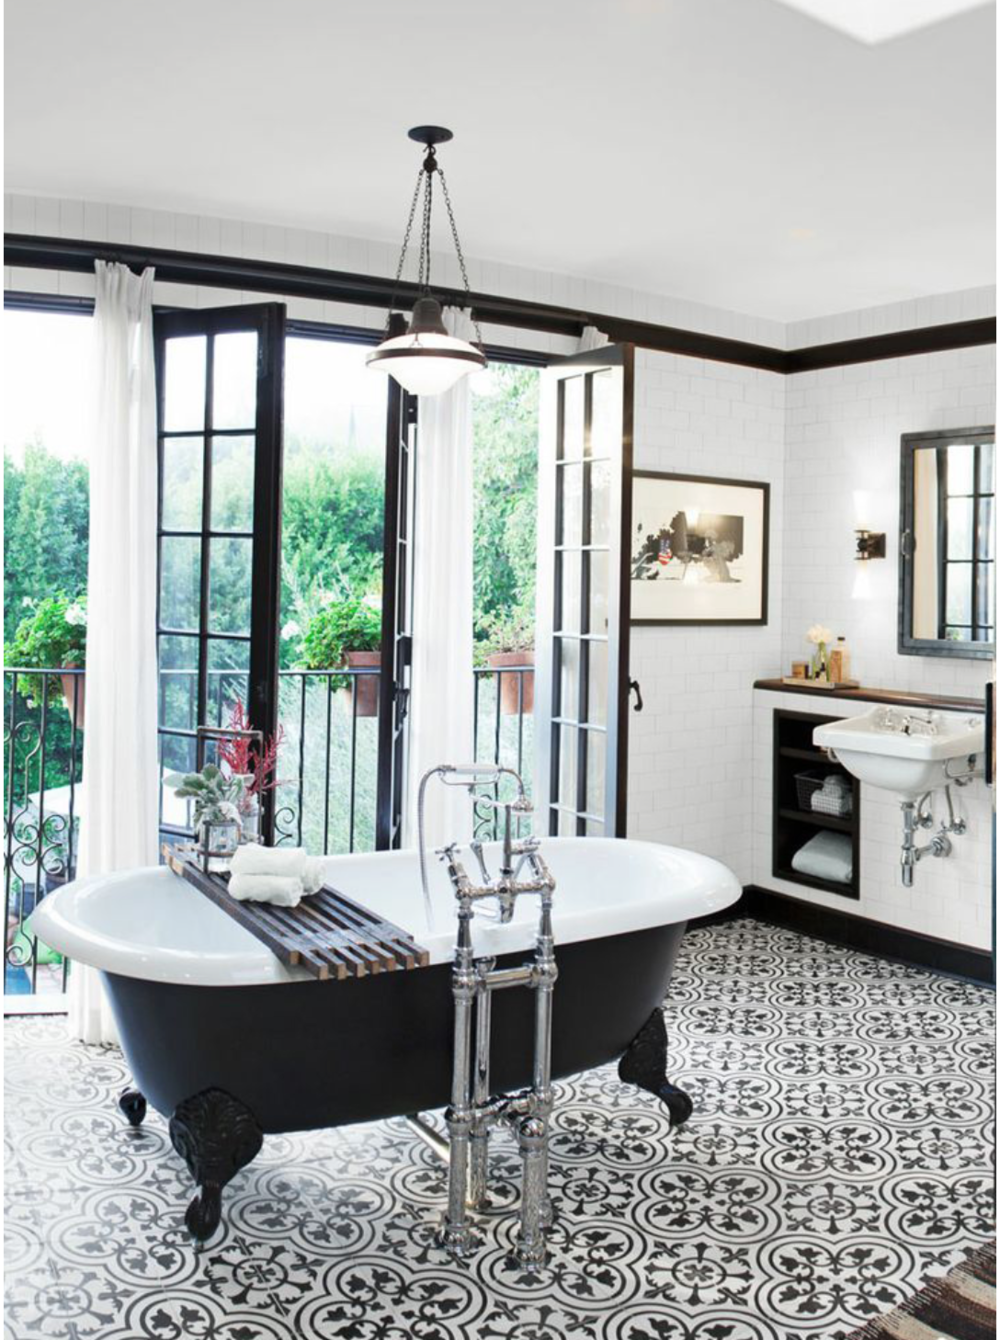 The 15 Most Beautiful Bathrooms On Pinterest Geometric Tile